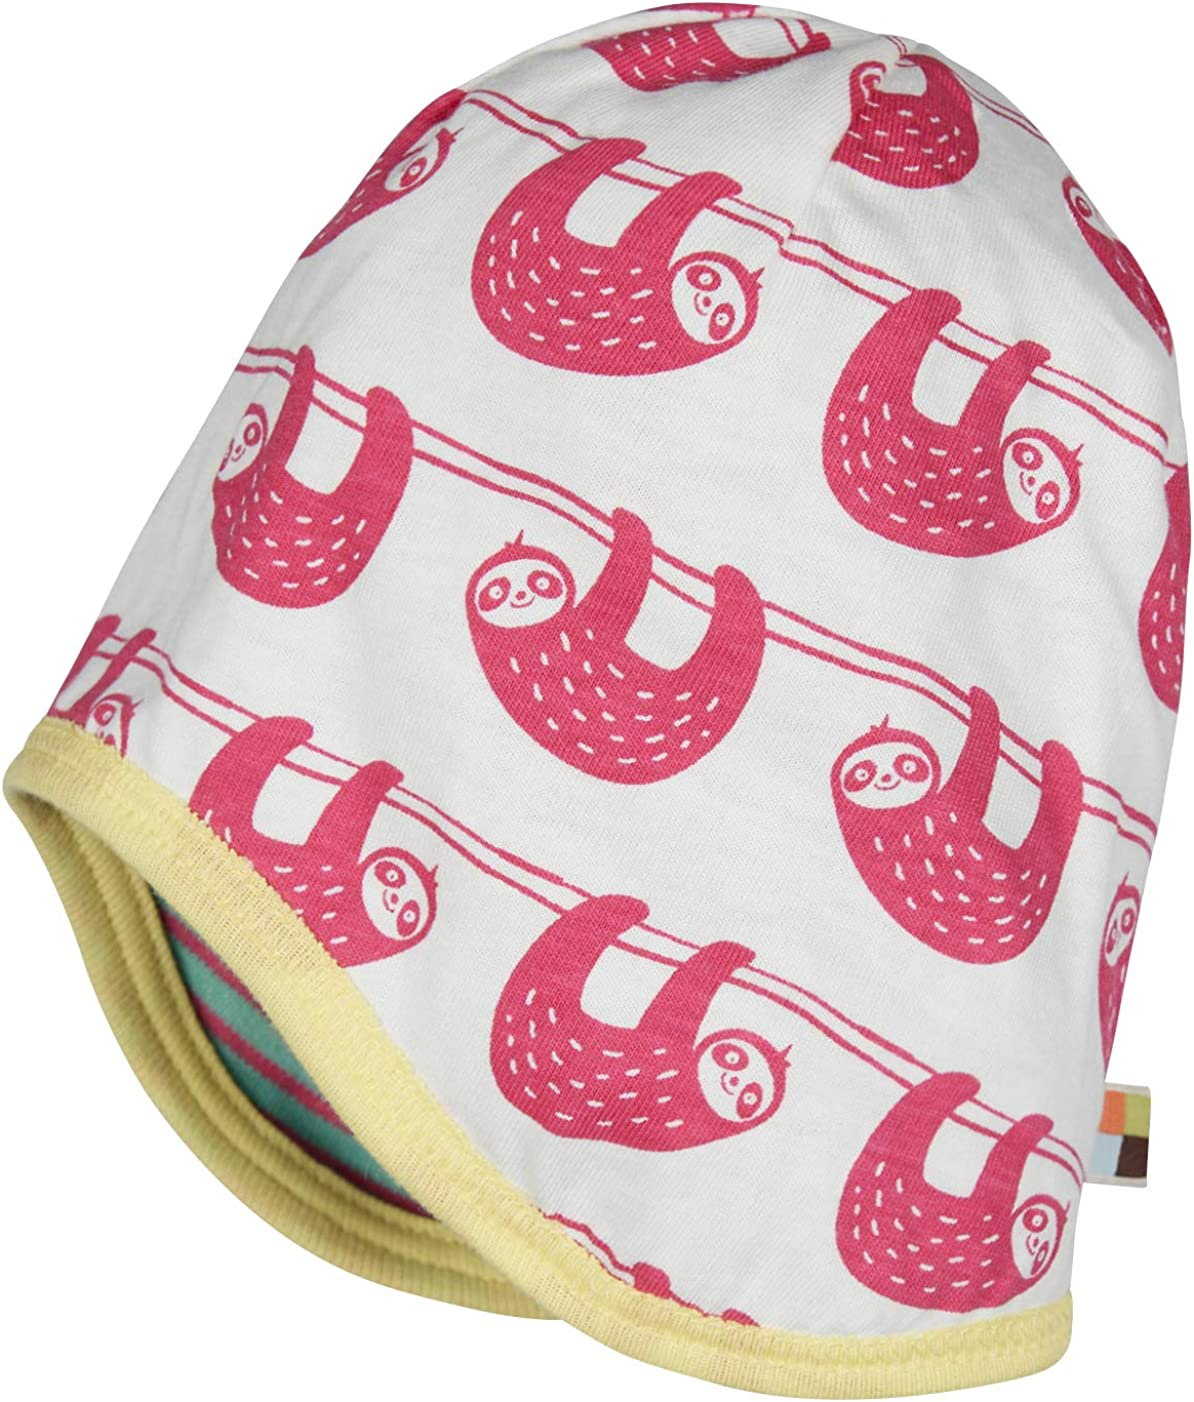 loud proud Reversible cap Organic Cotton Cappellopello Bambina